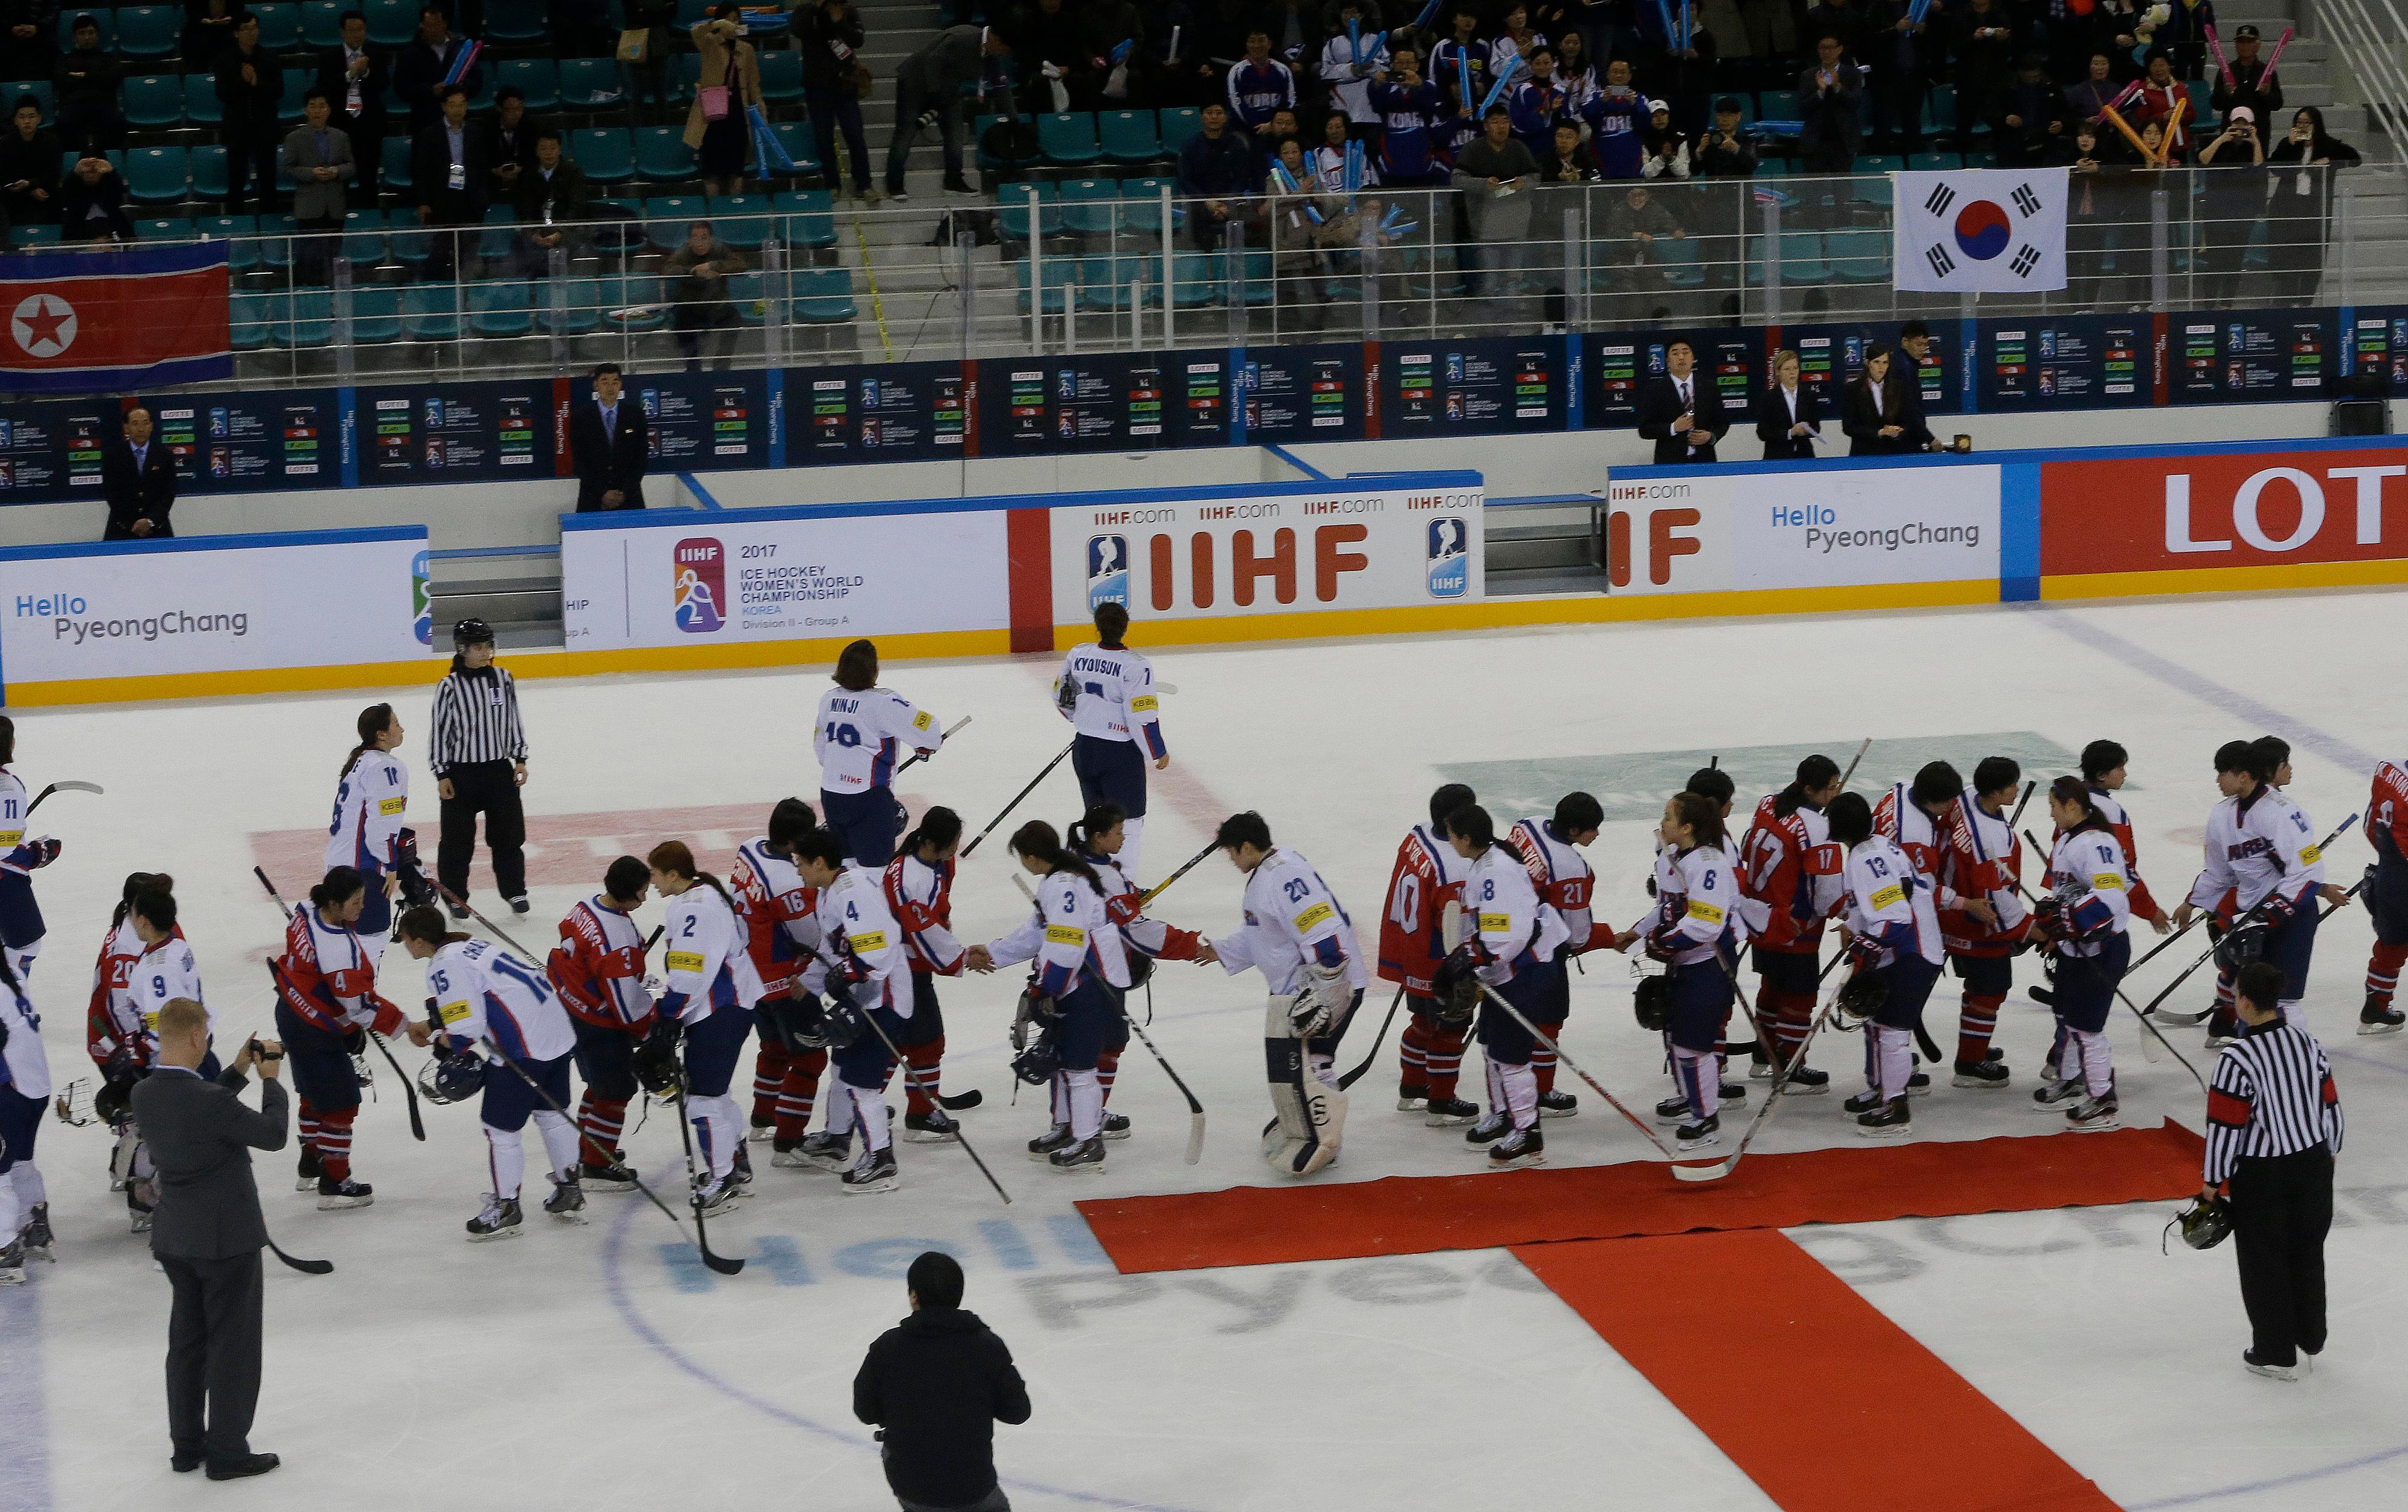 "FILE - In this April 6, 2017 file photo, South, wearing white uniforms, and North Korean players shake hands after their IIHF Ice Hockey Women's World Championship Division II Group A game in Gangneung, South Korea. During South and North Korea's talks at the border in about a week Wednesday, Jan. 17, 2018, senior officials from the two Koreas reached a package of deals including fielding a joint women's hockey team and conducting a joint march under a ""unification flag"" depicting their peninsula during the opening ceremony, according to Seoul's Unification Ministry. (AP Photo/Ahn Young-joon)"